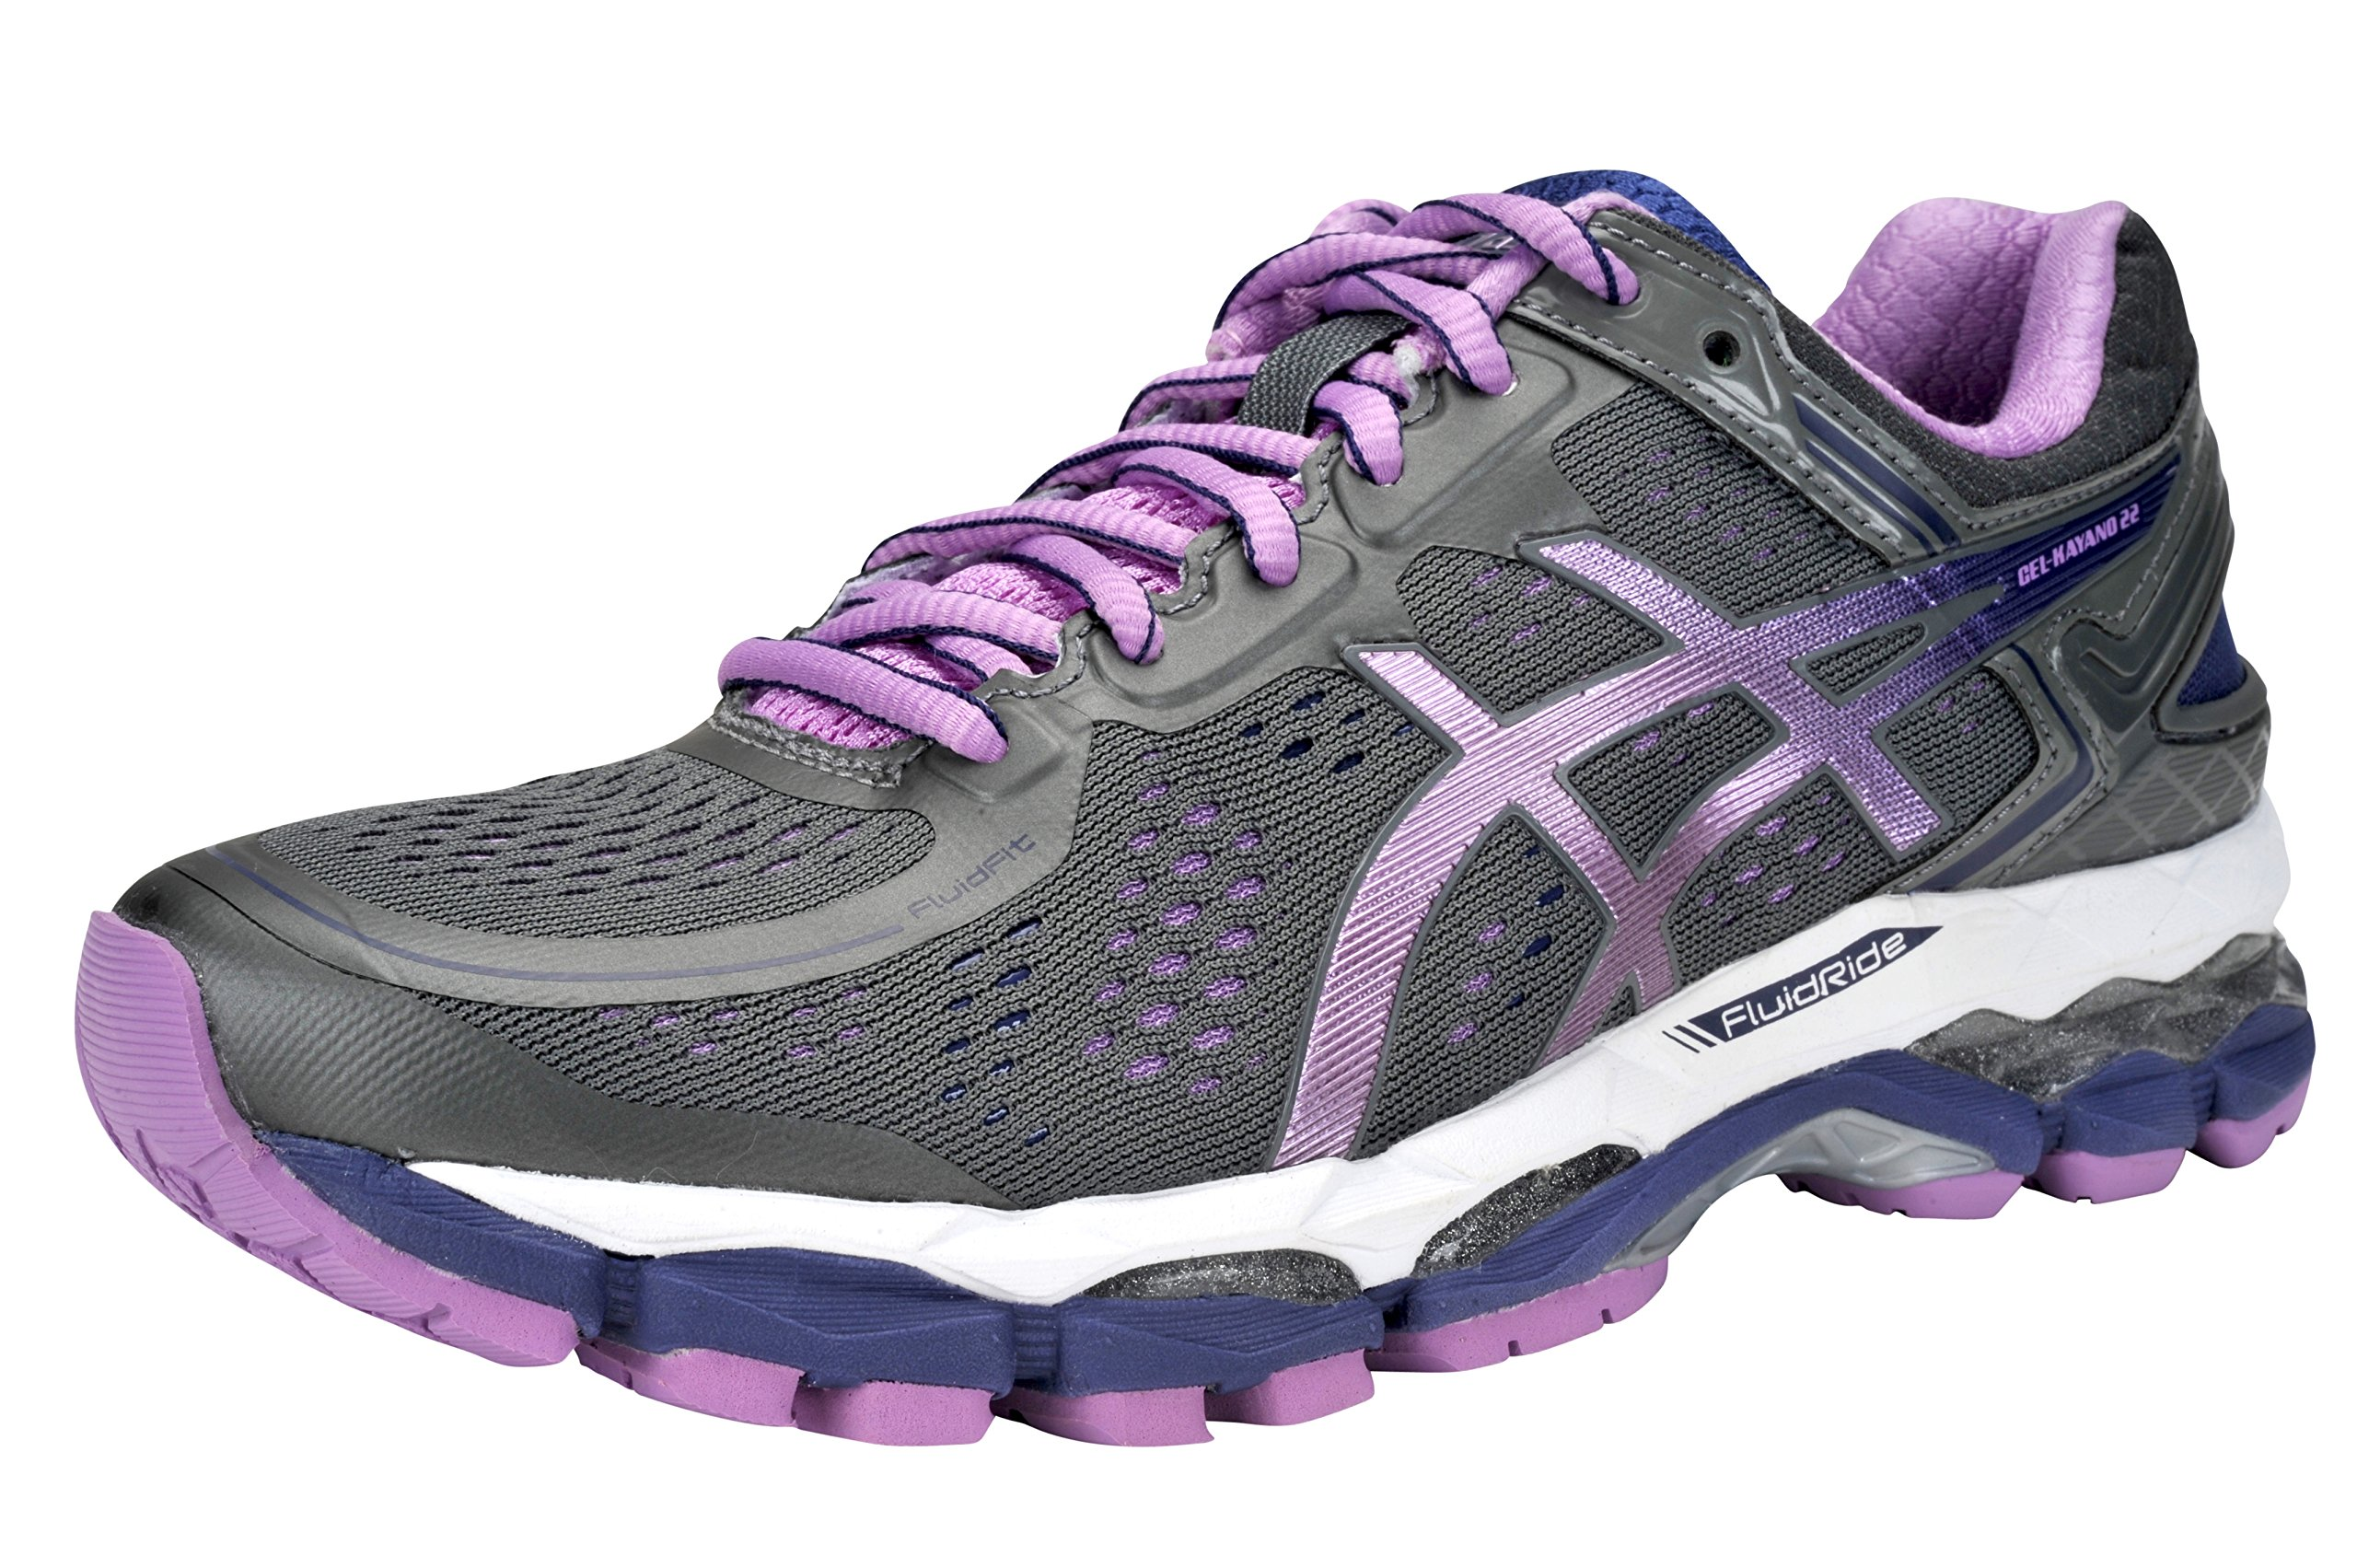 asics women 39 s gel kayano 22 running shoe 9 5 b m us gunmetallviolet cobalt 0889436507723. Black Bedroom Furniture Sets. Home Design Ideas